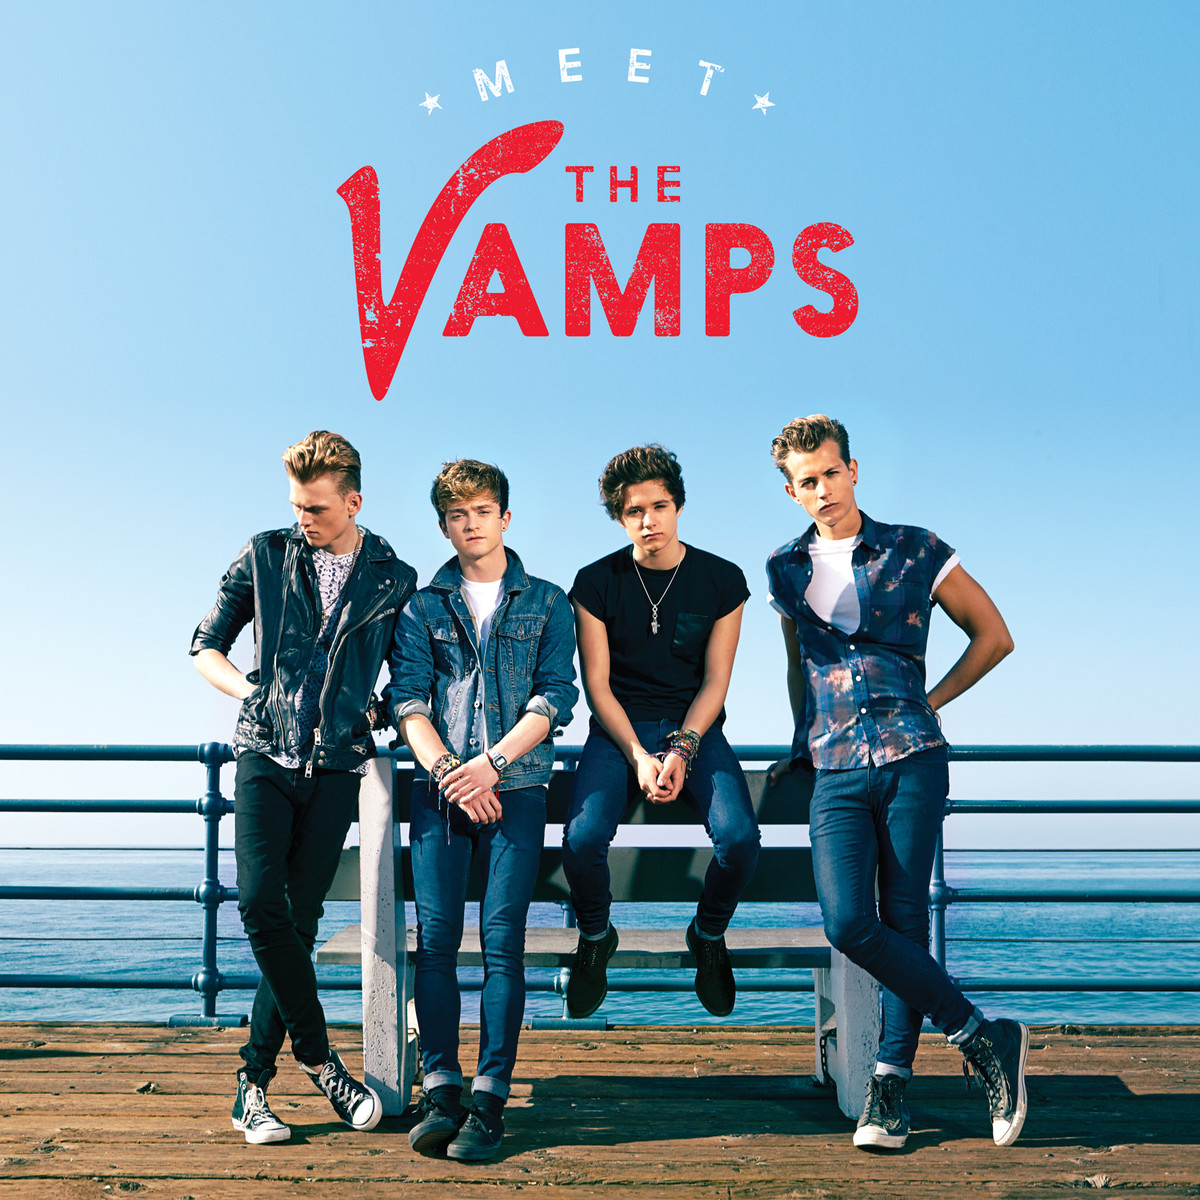 the-vamps-meet-the-vamps-37355625-1200-1200.png